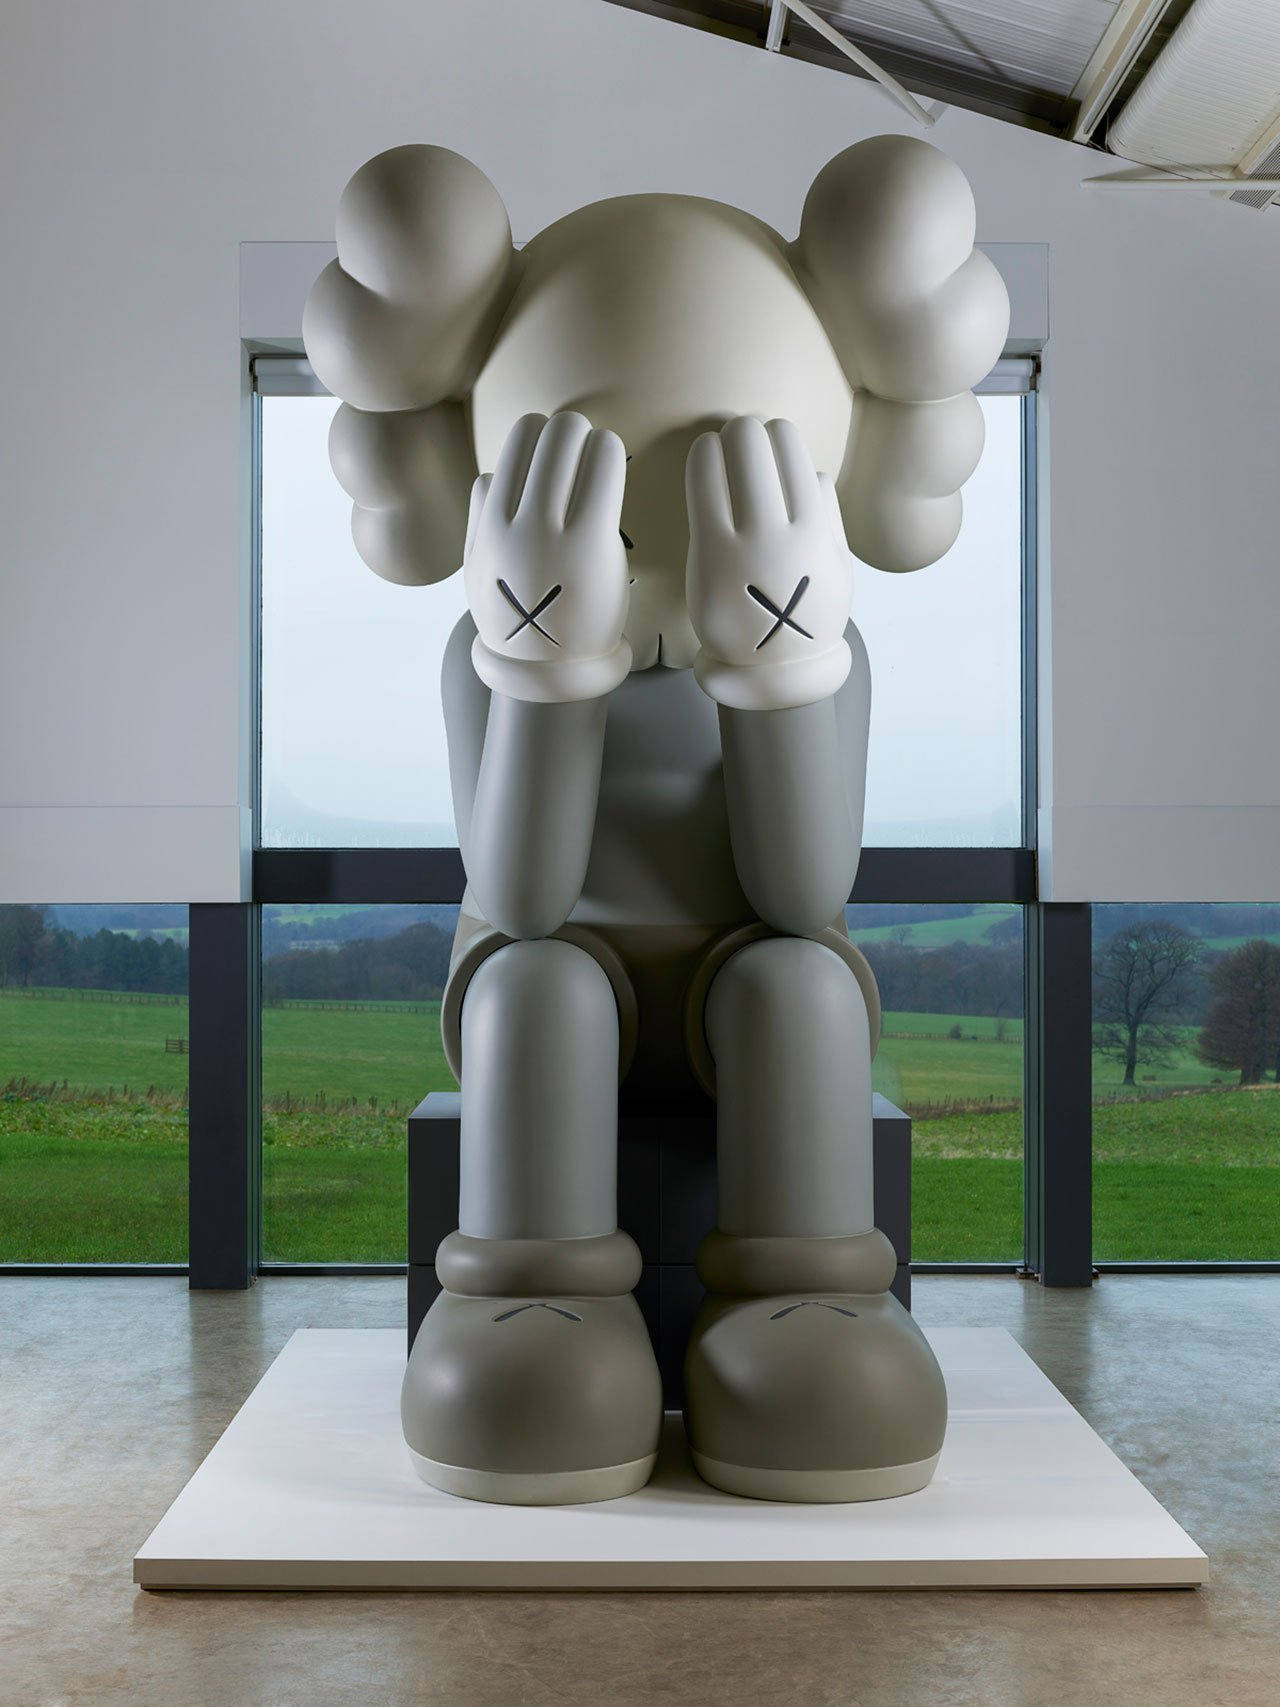 Companion (Passing Through),2010.Courtesy the artist, YSP and Galerie Perrotin. Collection of Larry Warsh. Fibreglass, metal structure, paint. H487.68cm W288.3cm. Photo © Jonty Wilde.